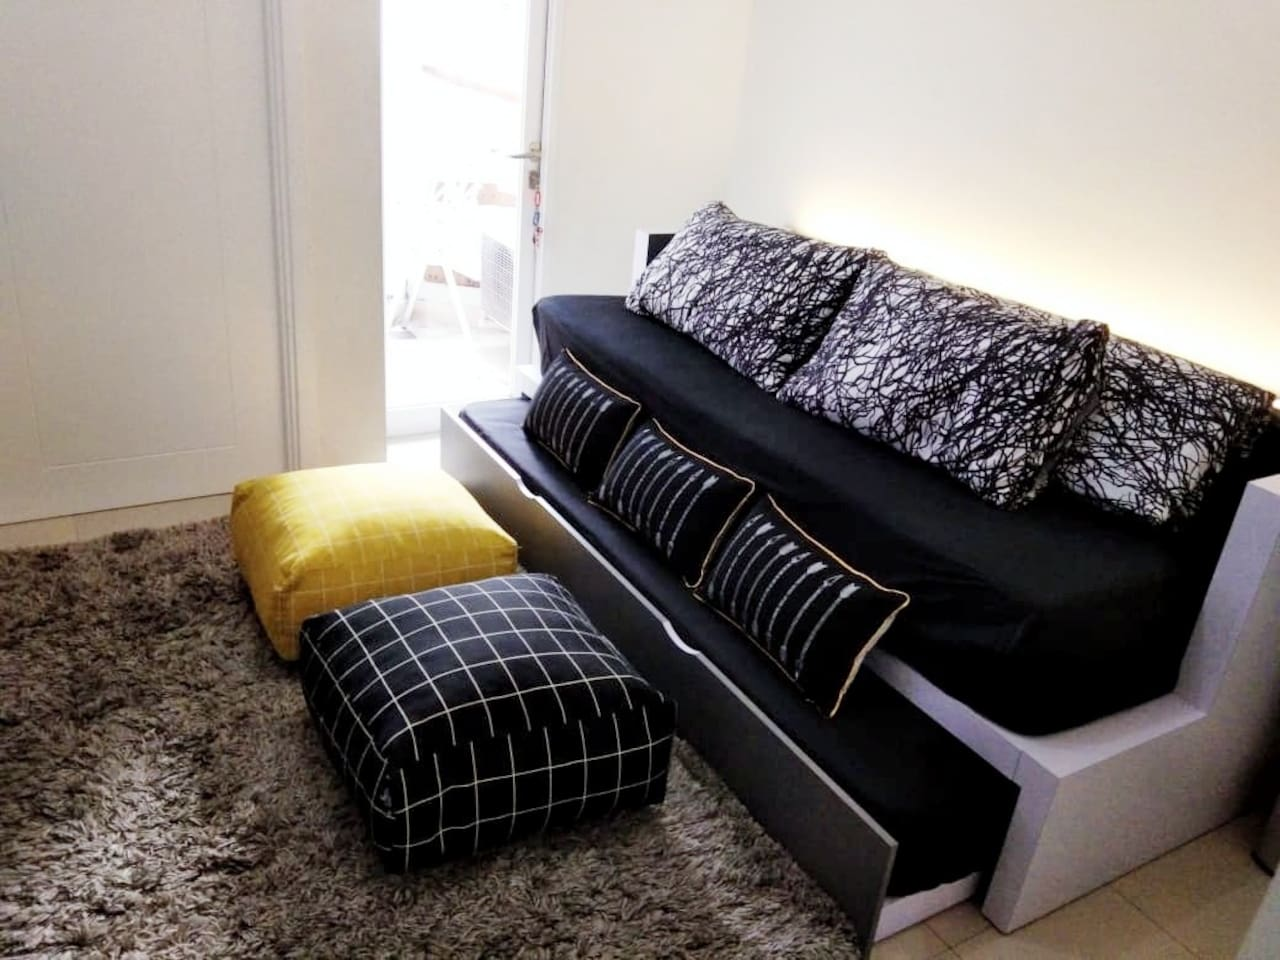 2 ( two ) single bed in the living room